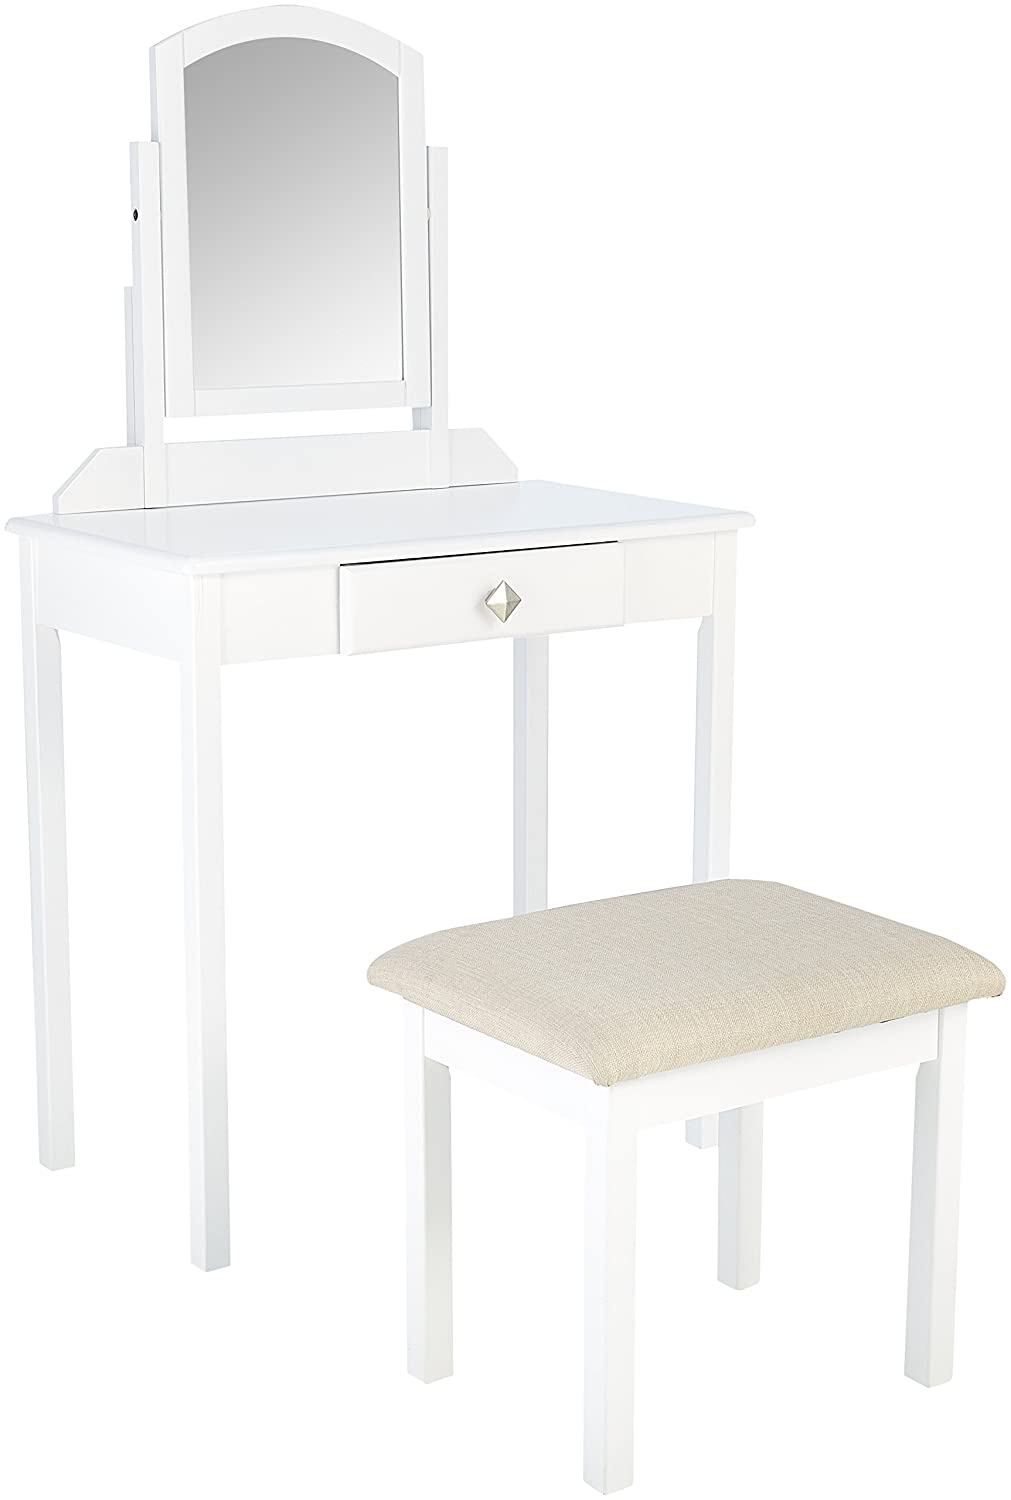 AmazonBasics Classic Compact Vanity Set with Stool -White